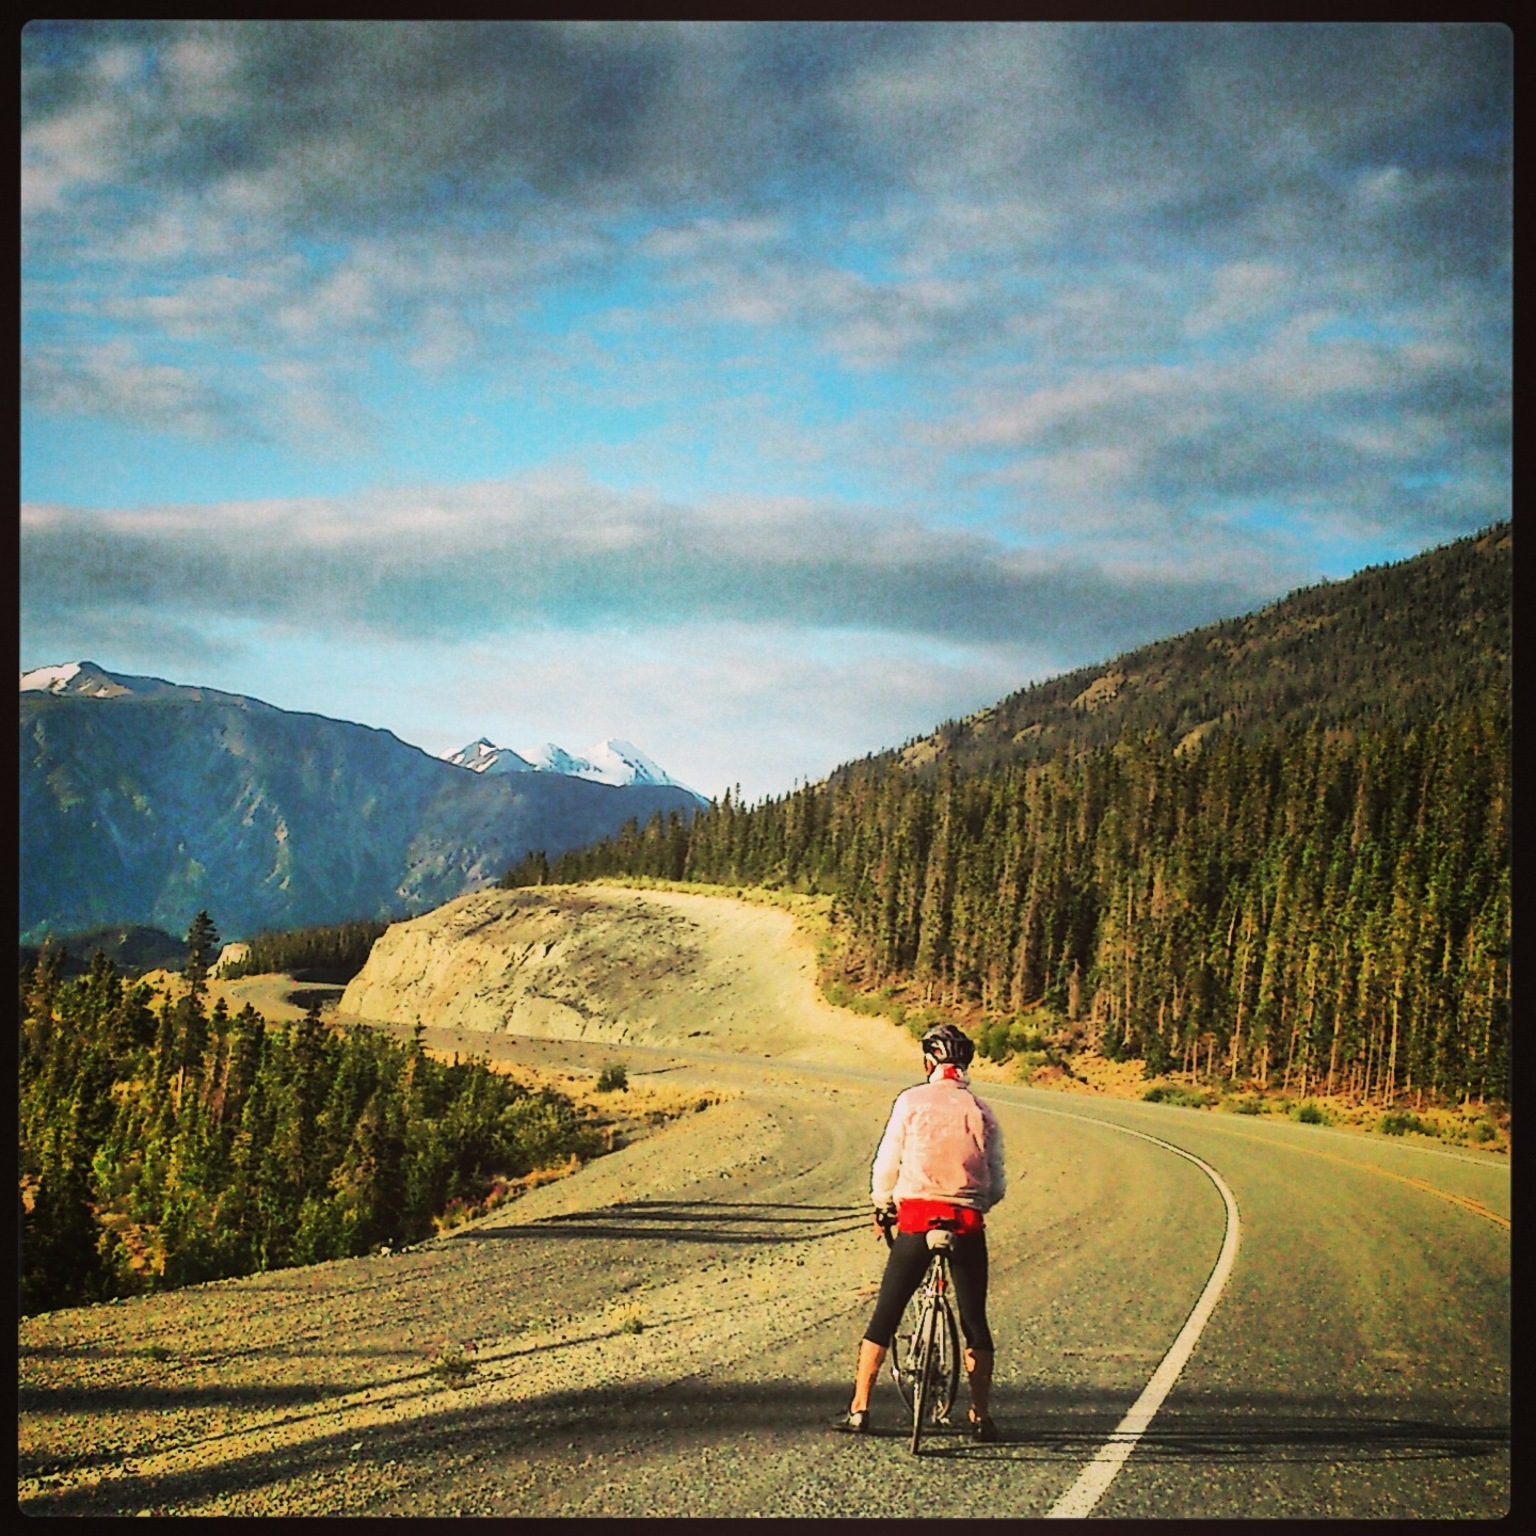 Music & Cycling in the Land of the Midnight Sun